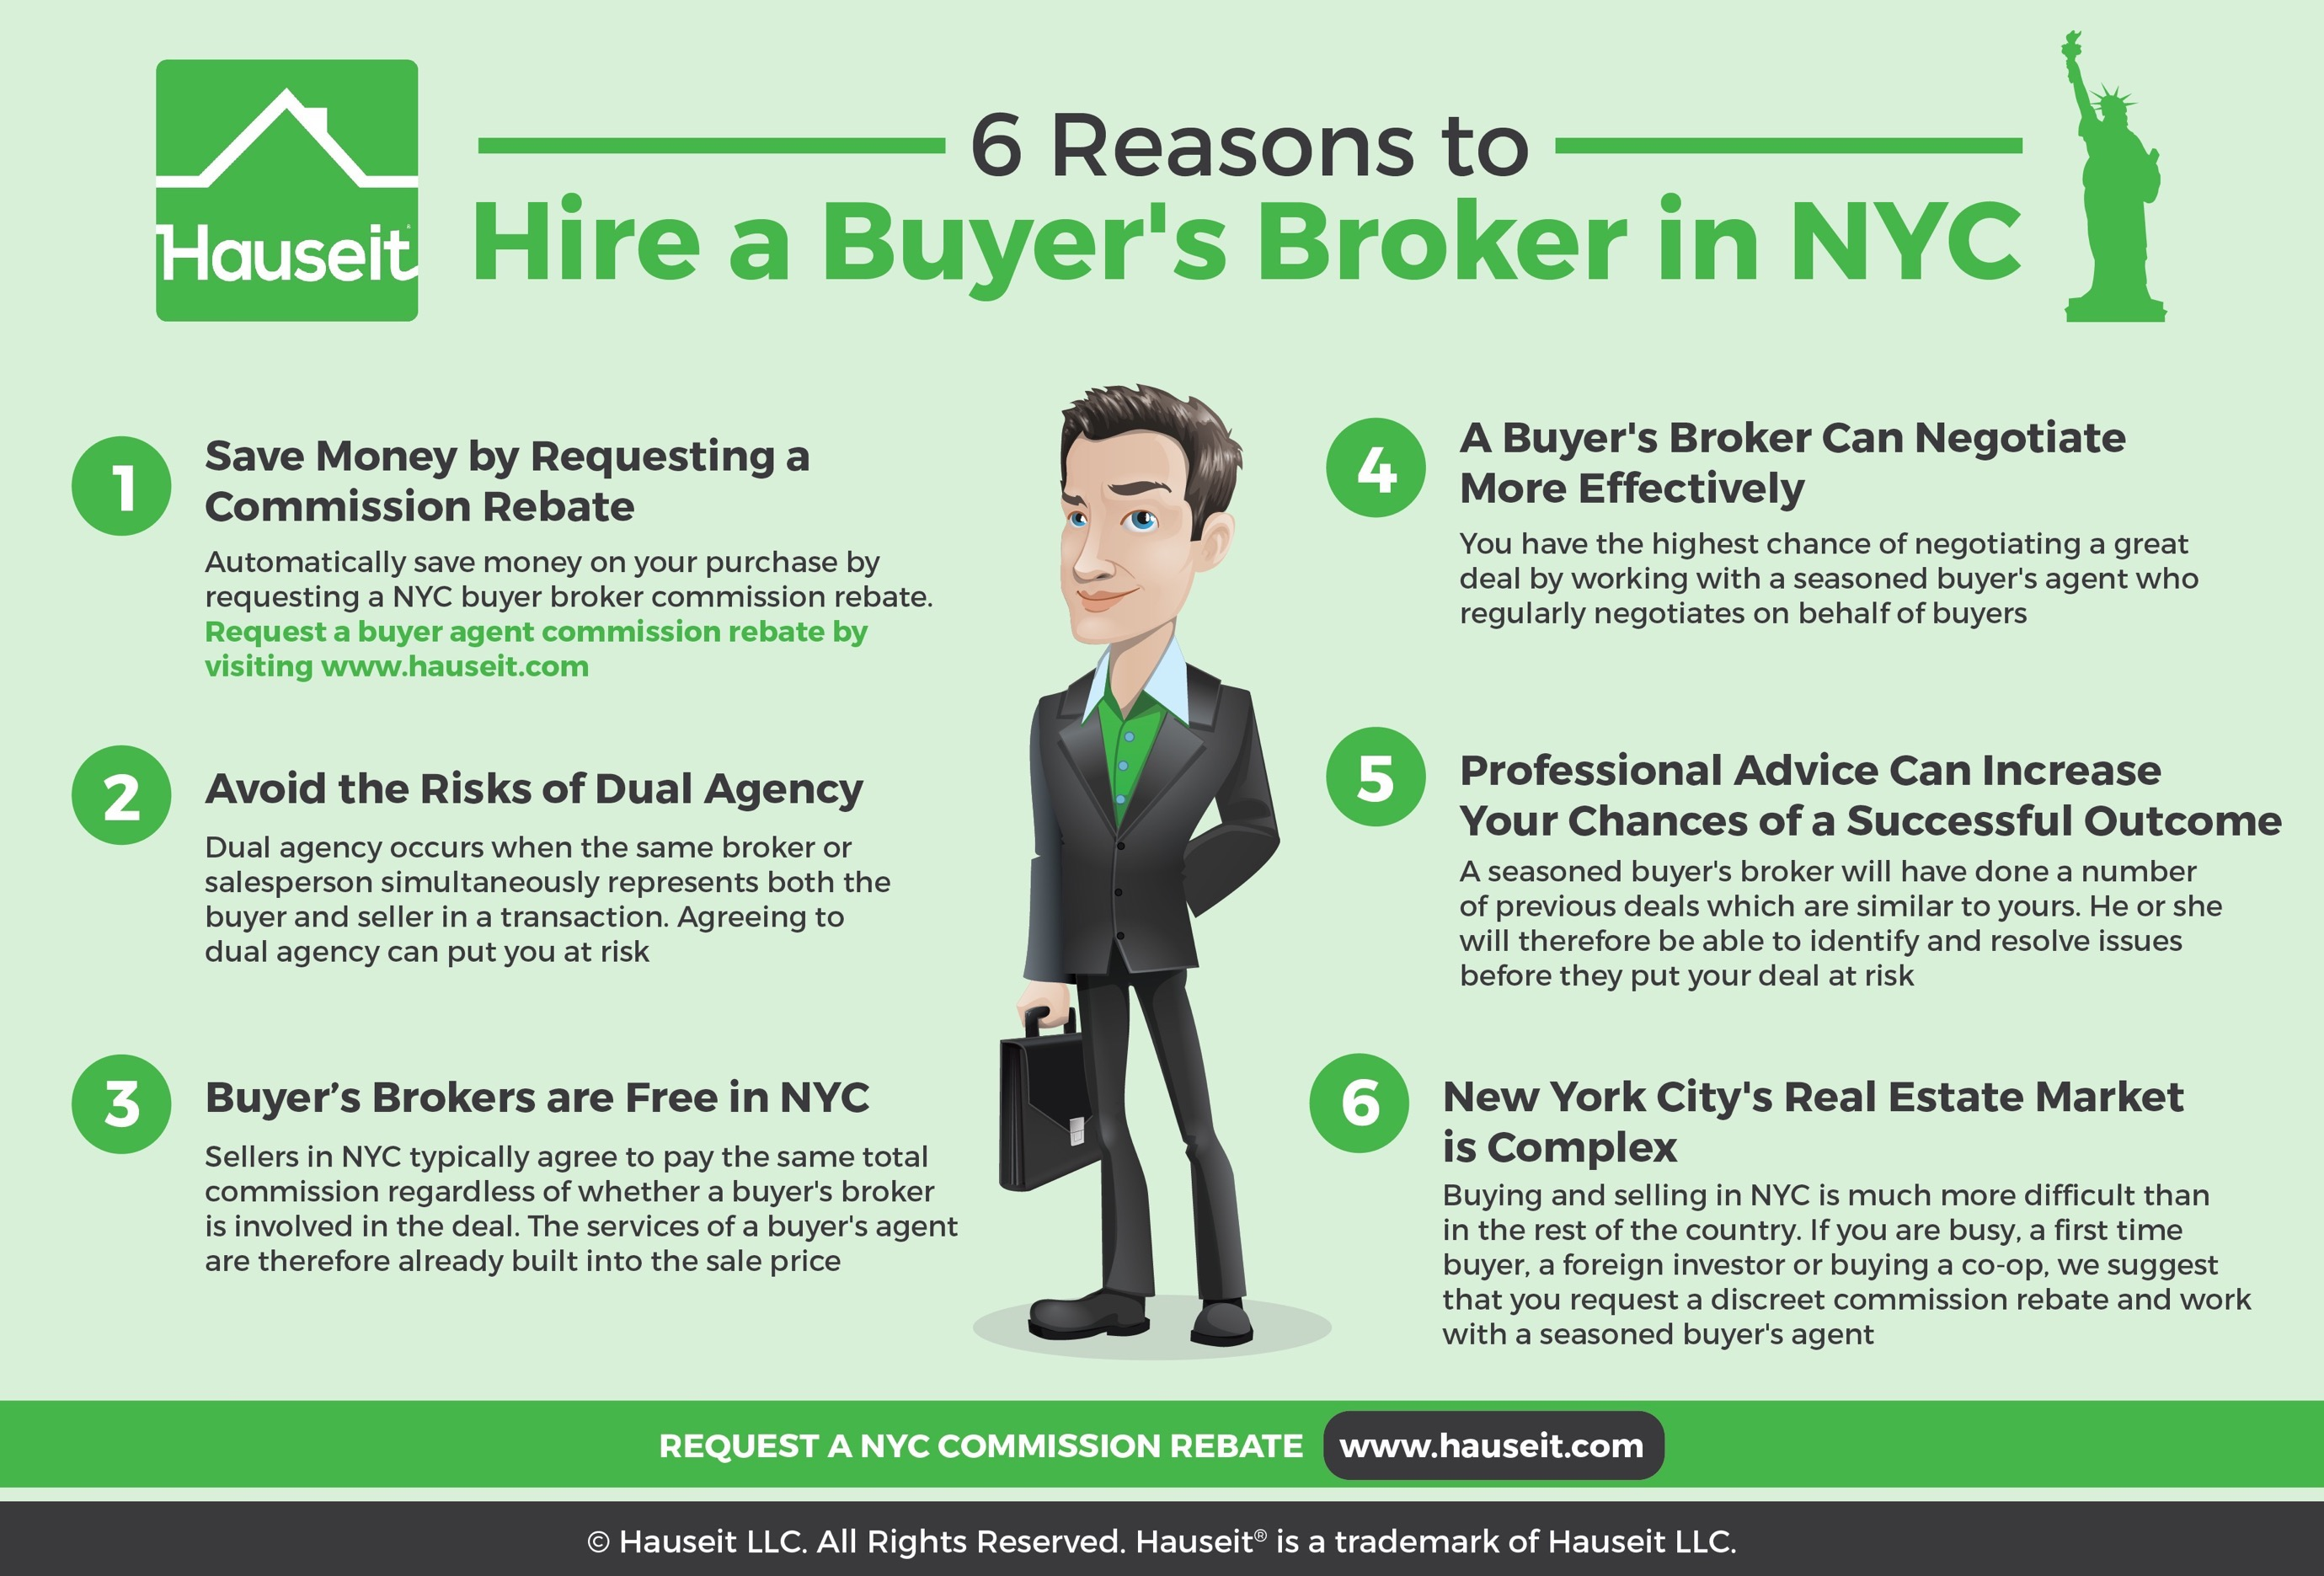 6 Reasons To Hire a Buyer's Broker in NYC